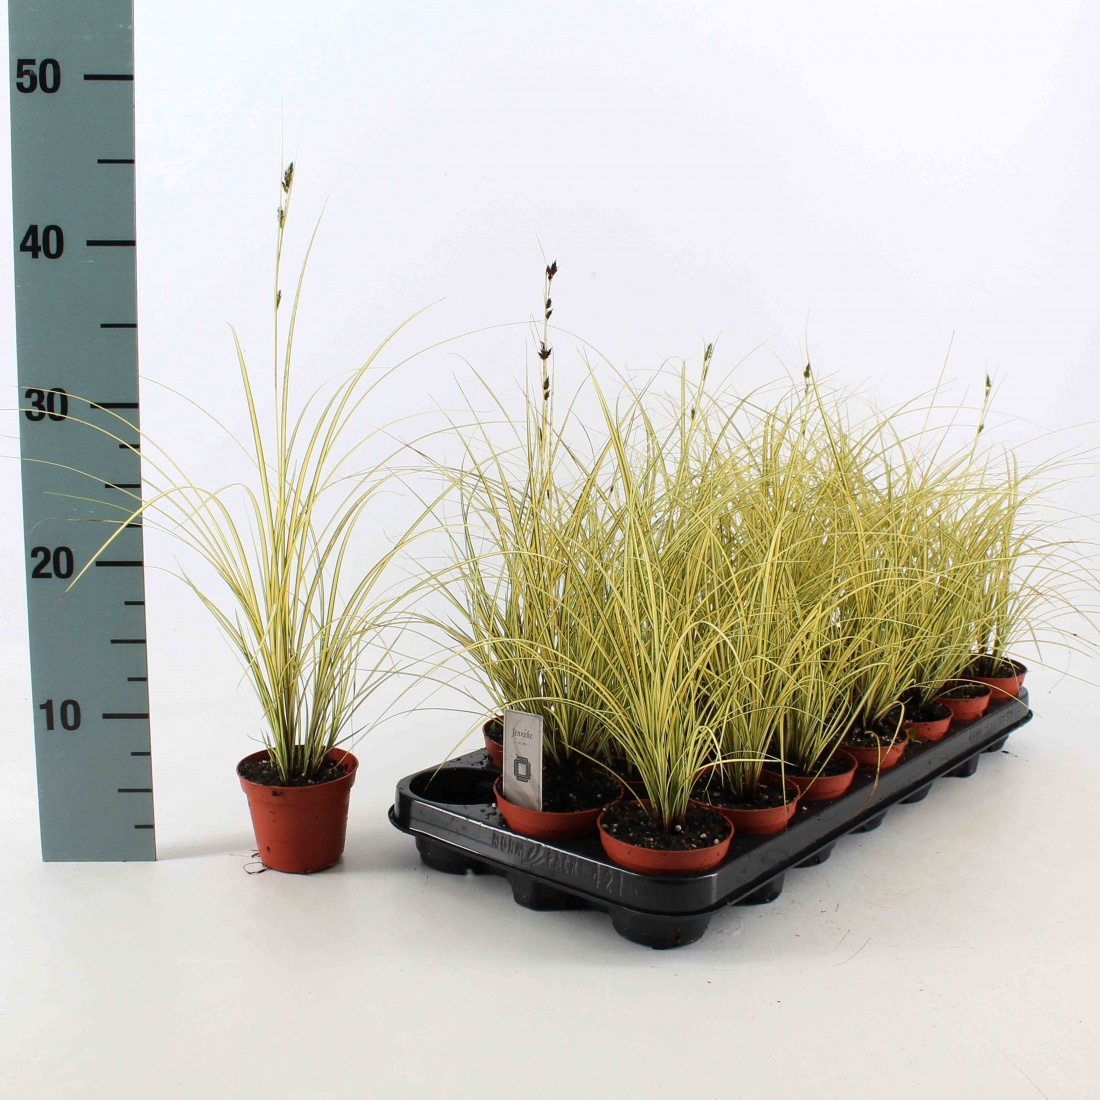 Carex brunnea 'Jennecke'® P8